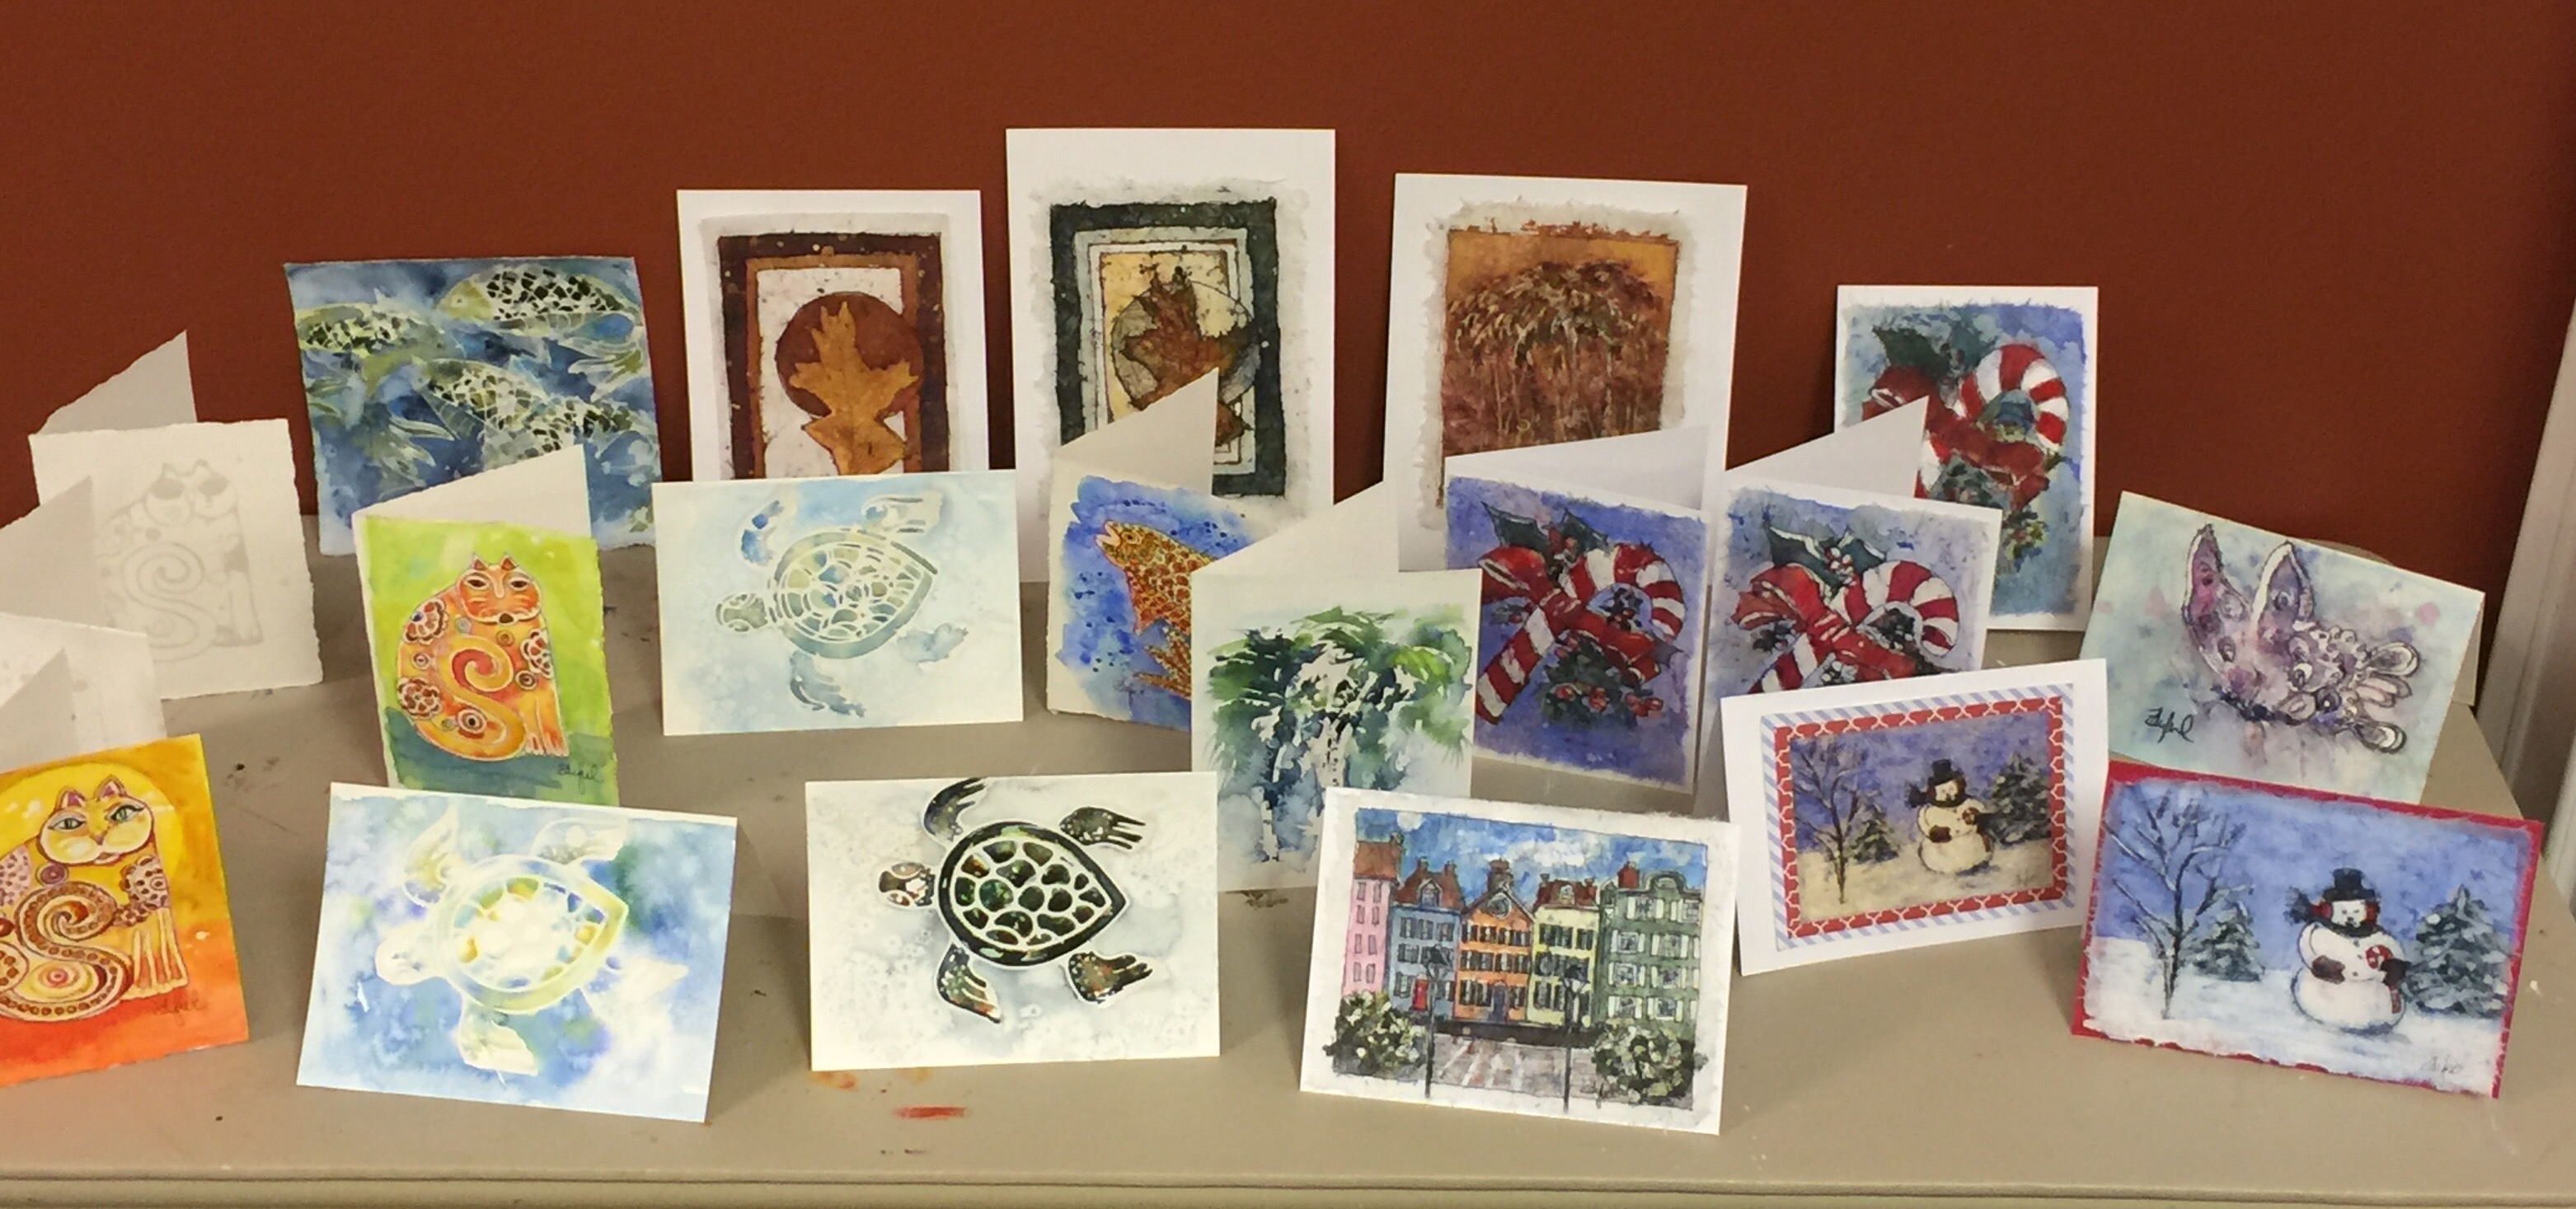 All the new batik lessons available to paint in class!